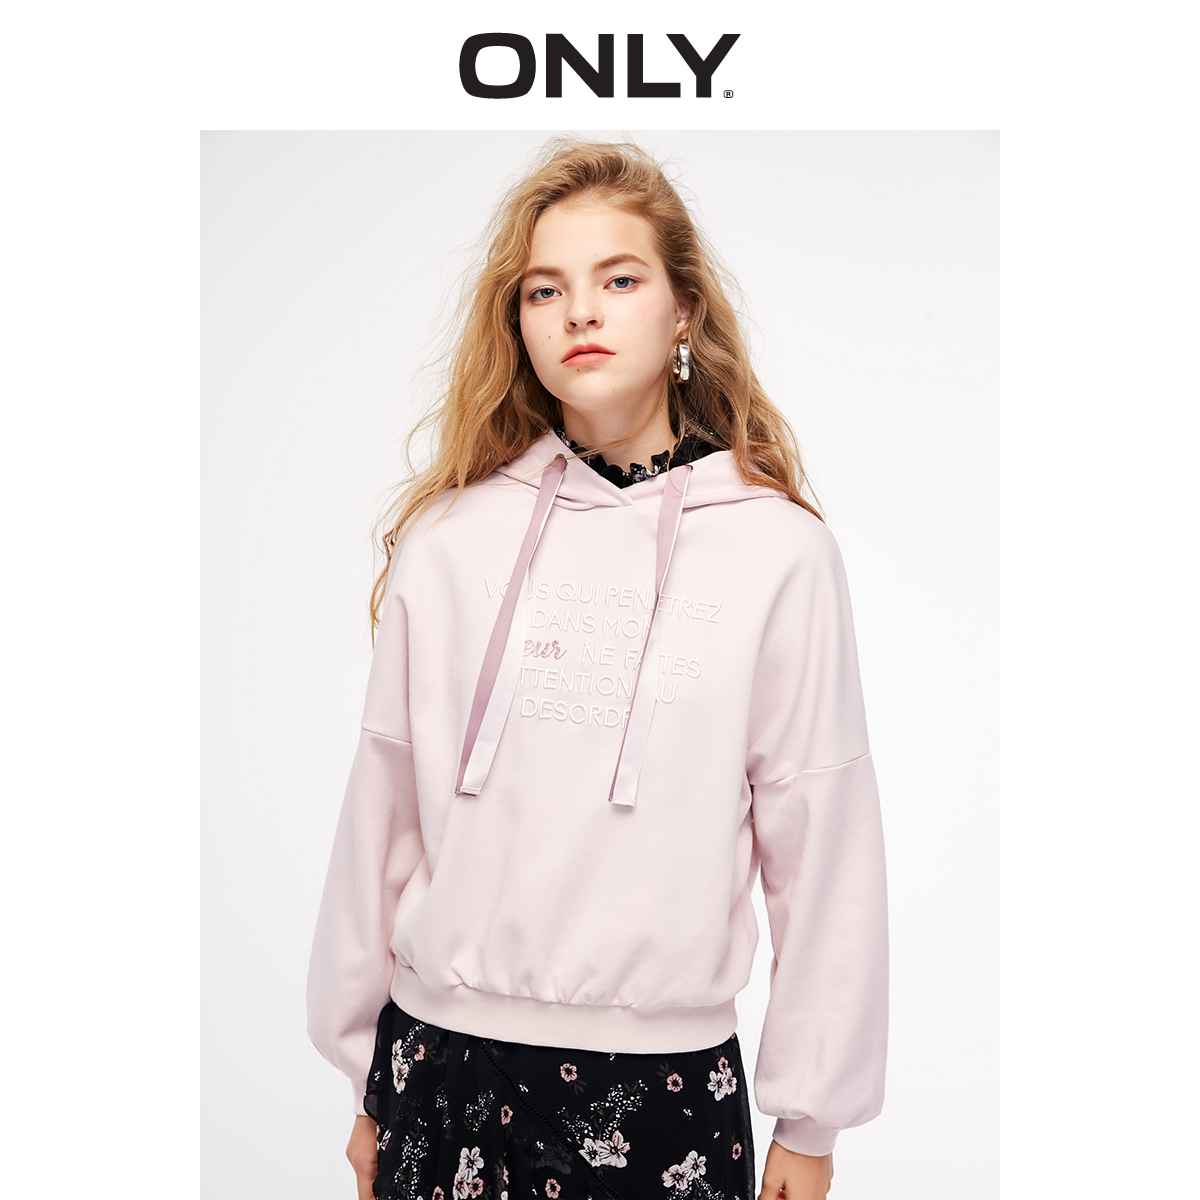 ONLY Women's Pink Letter Embroidery Hoodie | 11919S528